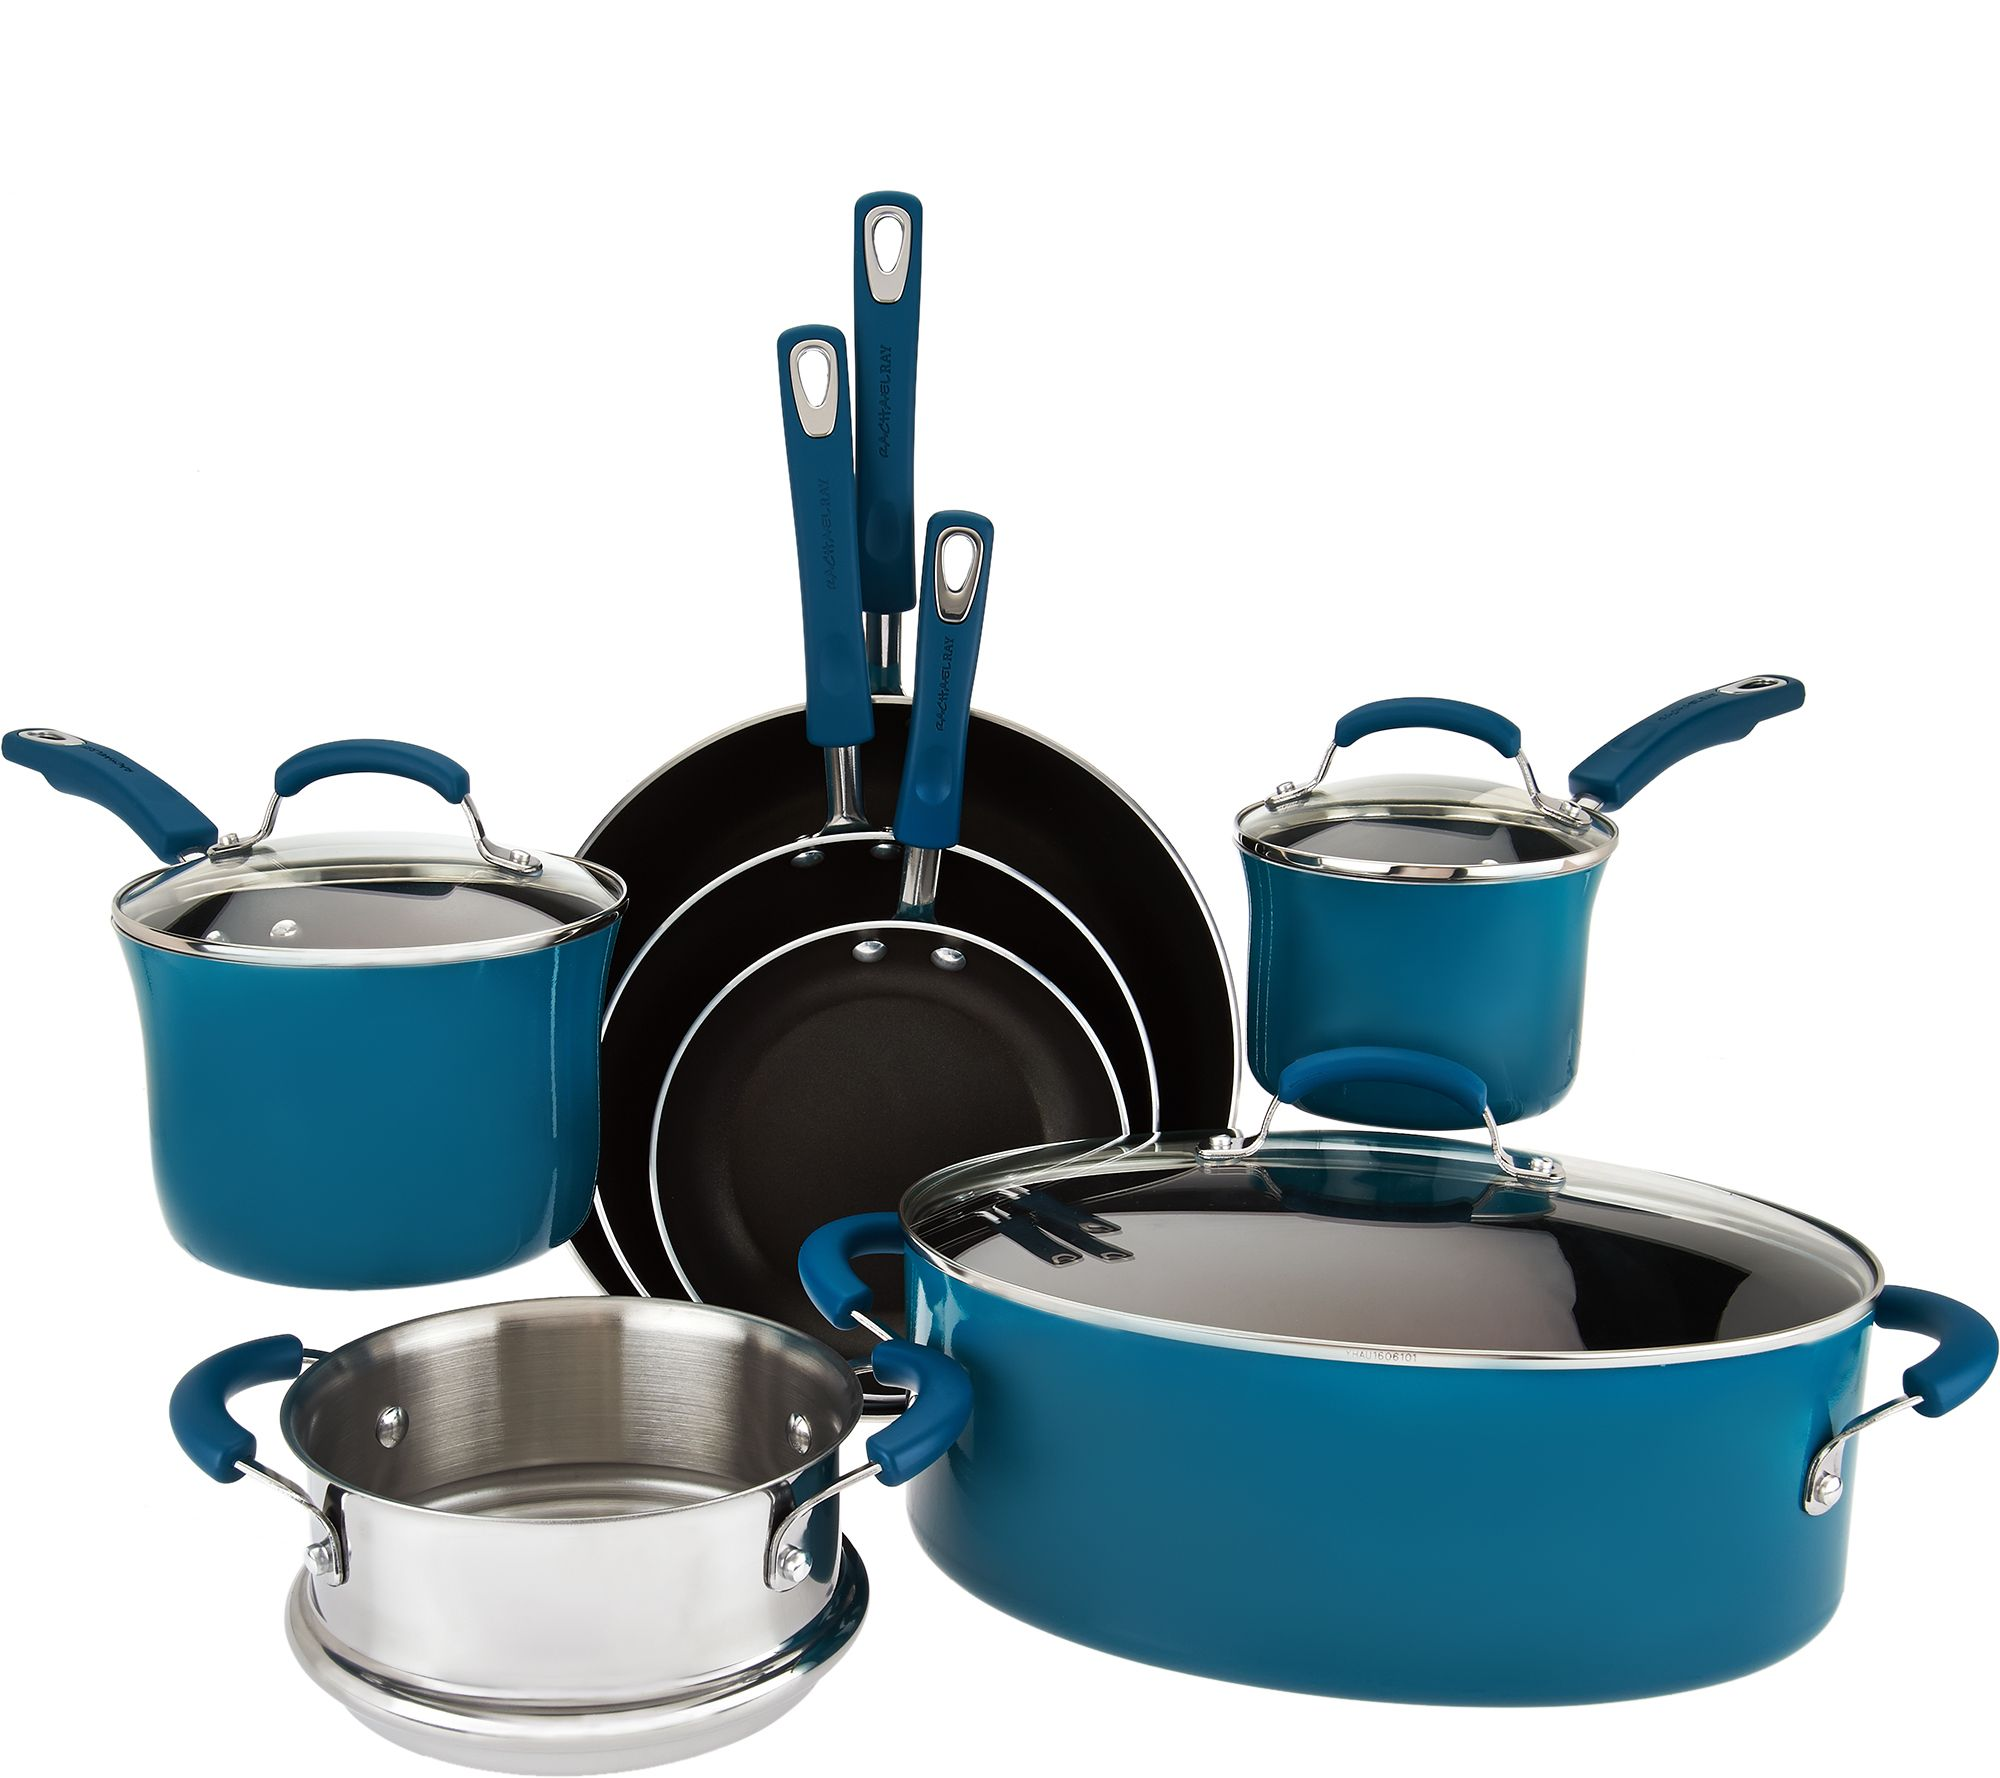 rachael ray cookware rachael 10 pc gradient porcelain enamel cookware set 28445